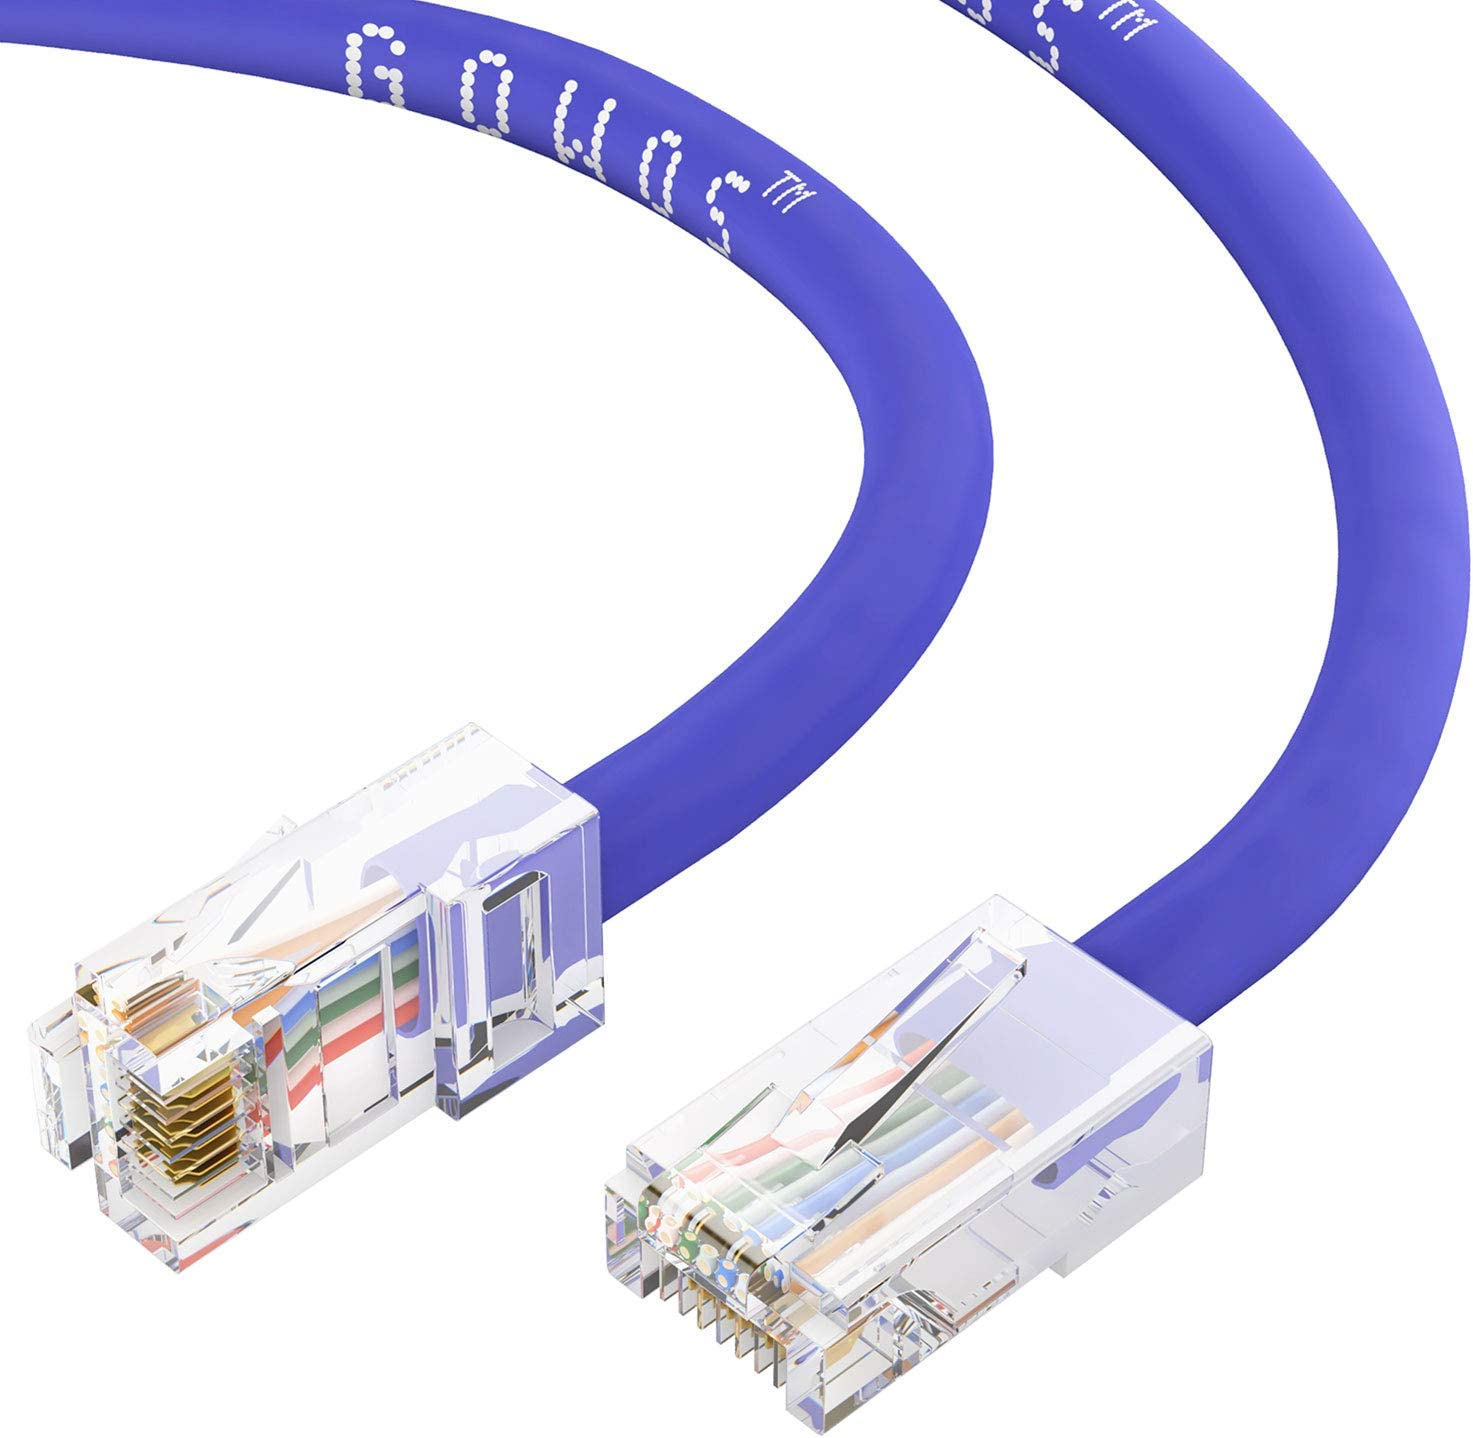 10 Gigabit//Sec High Speed LAN Internet//Patch Cable 24AWG Network Cable with Gold Plated RJ45 Non-Booted Connector GOWOS Cat6 Ethernet Cable 550MHz 20-Pack - 25 Feet Purple